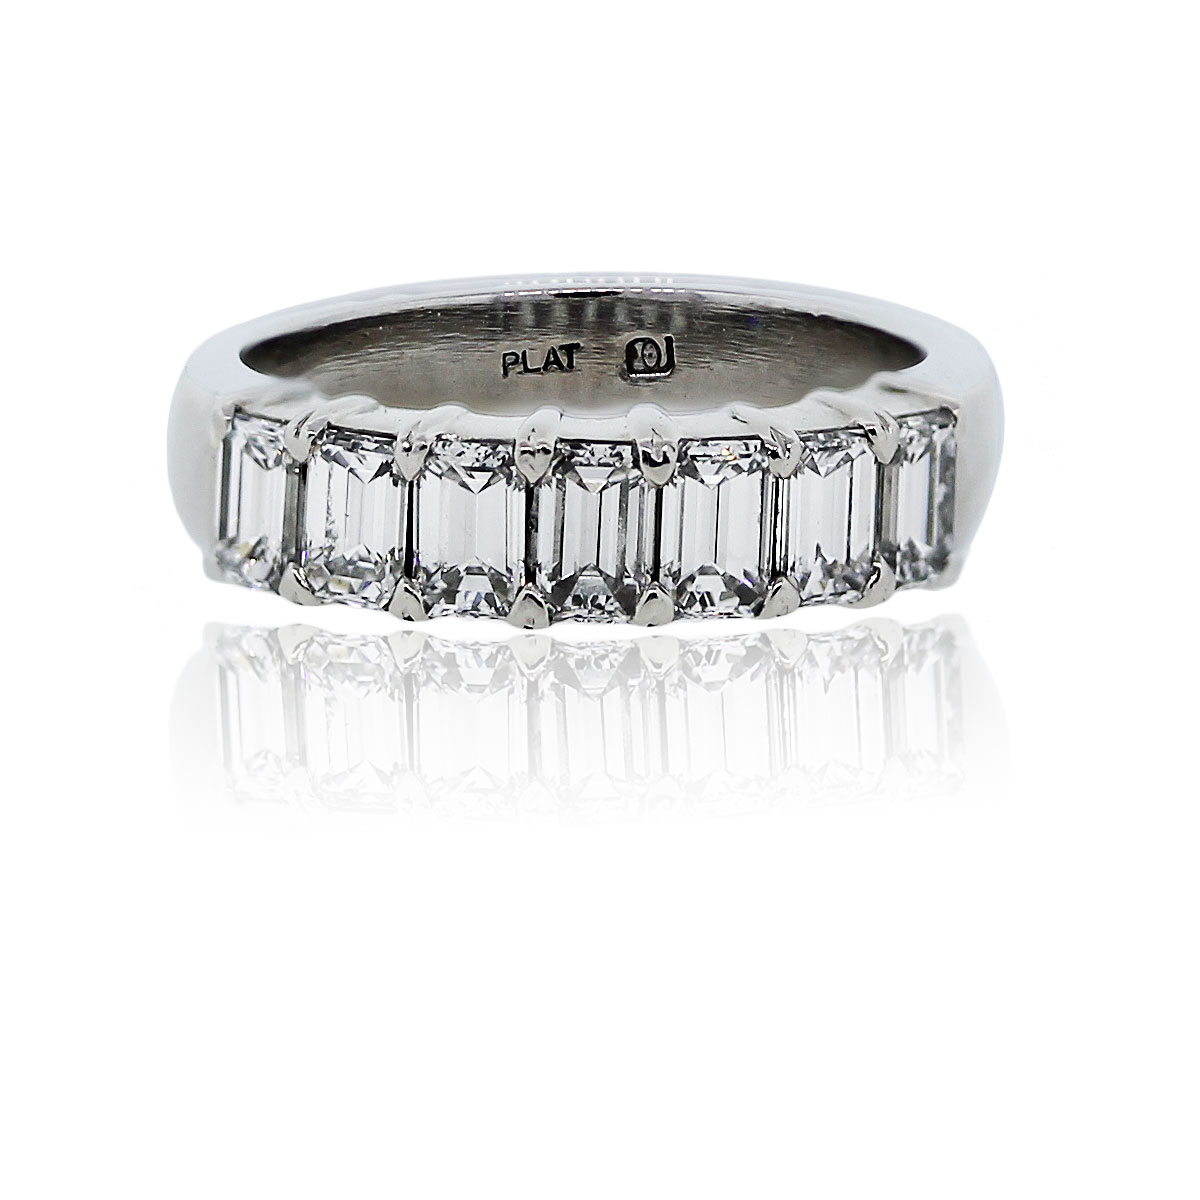 you are viewing this platinum emerald shape diamond wedding band ring